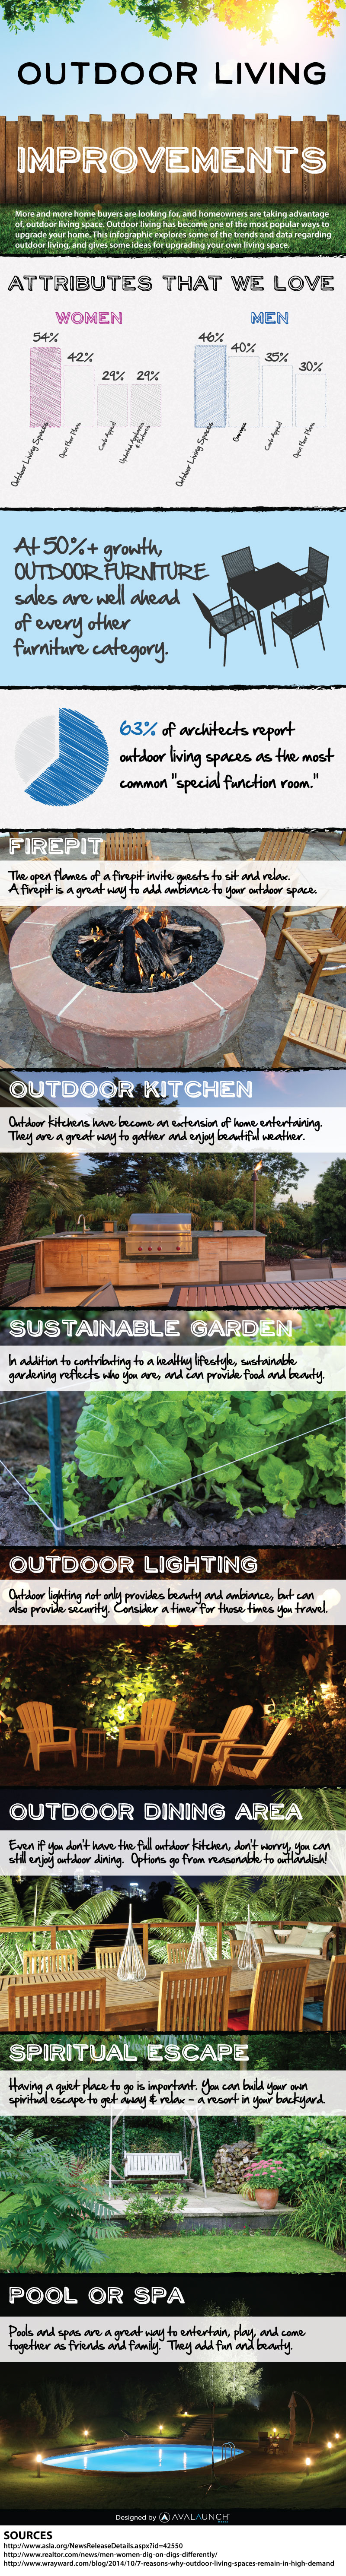 outdoor-living-improvements-avalaunch (1)